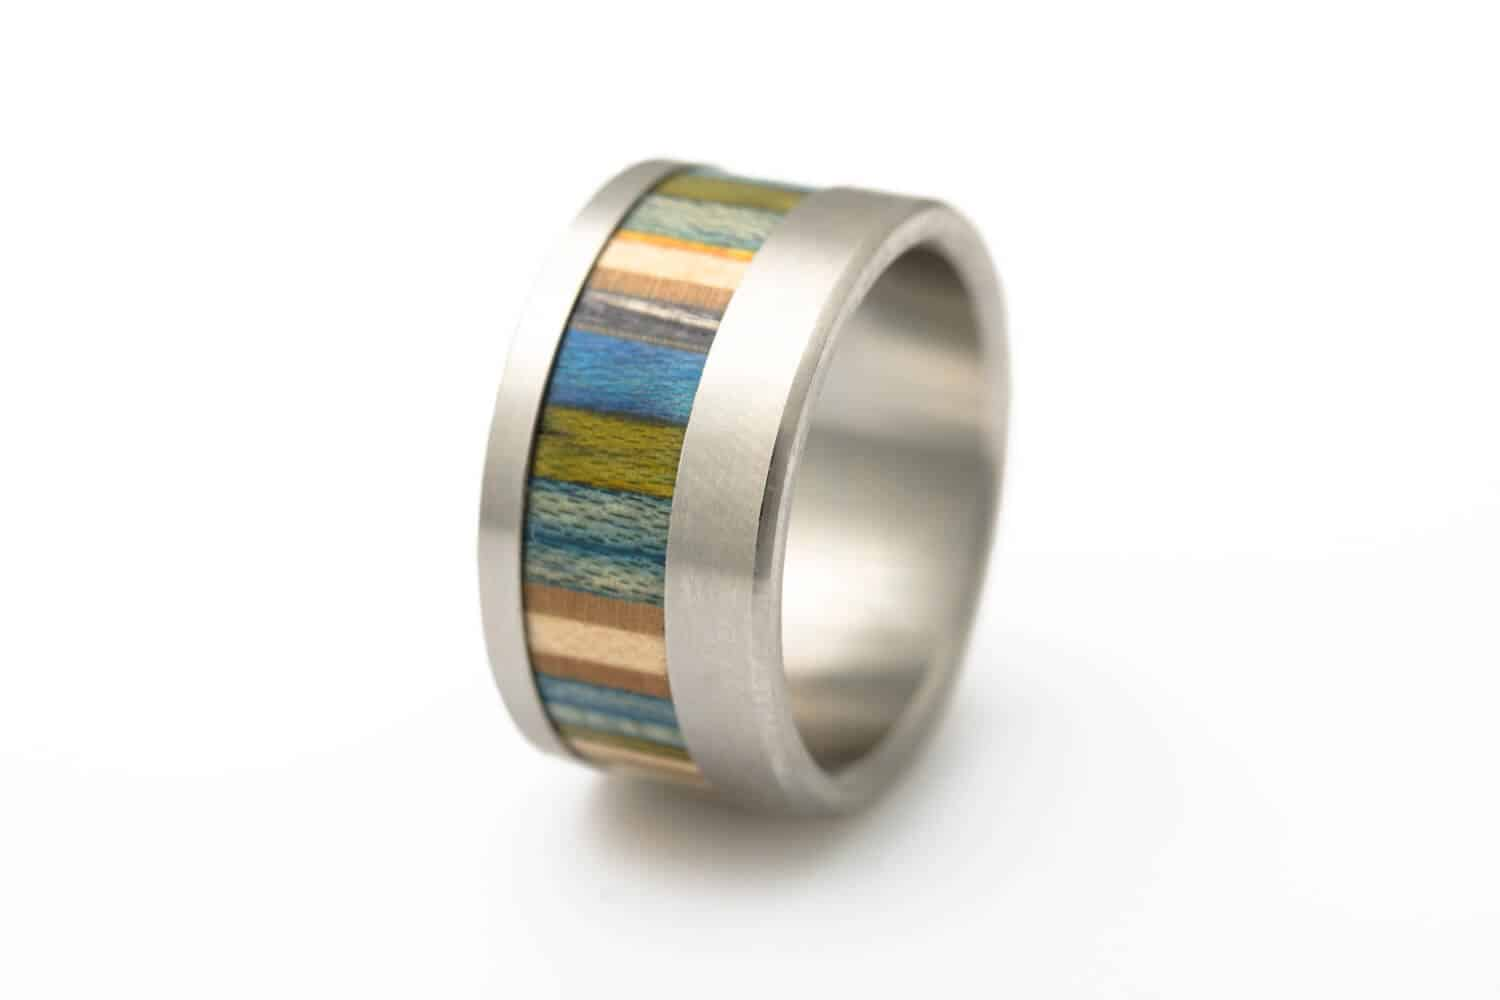 Rings made from sanded skateboard wood